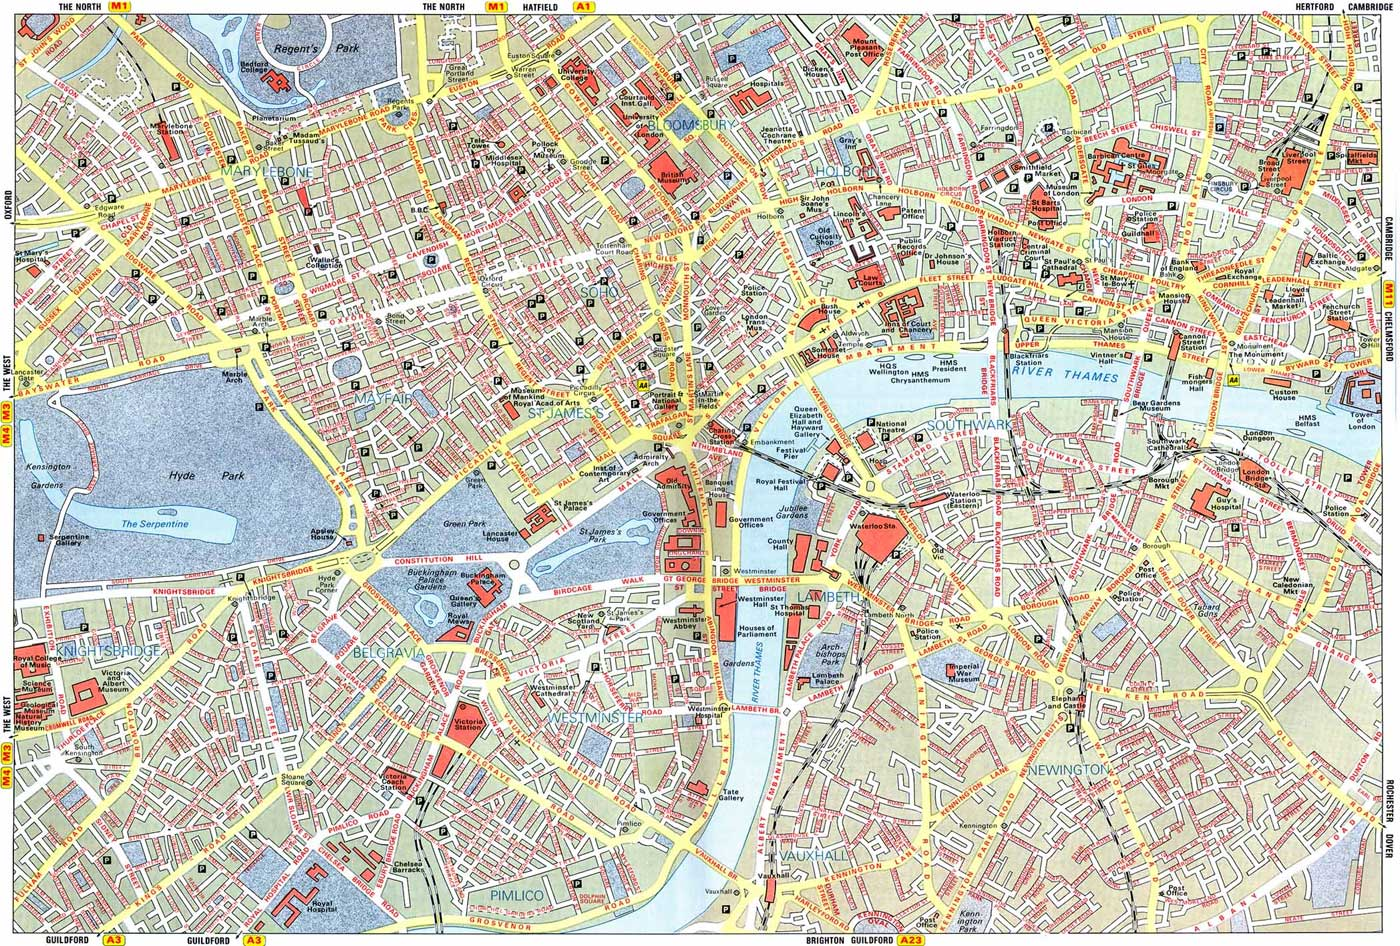 City Map of London Mapsofnet